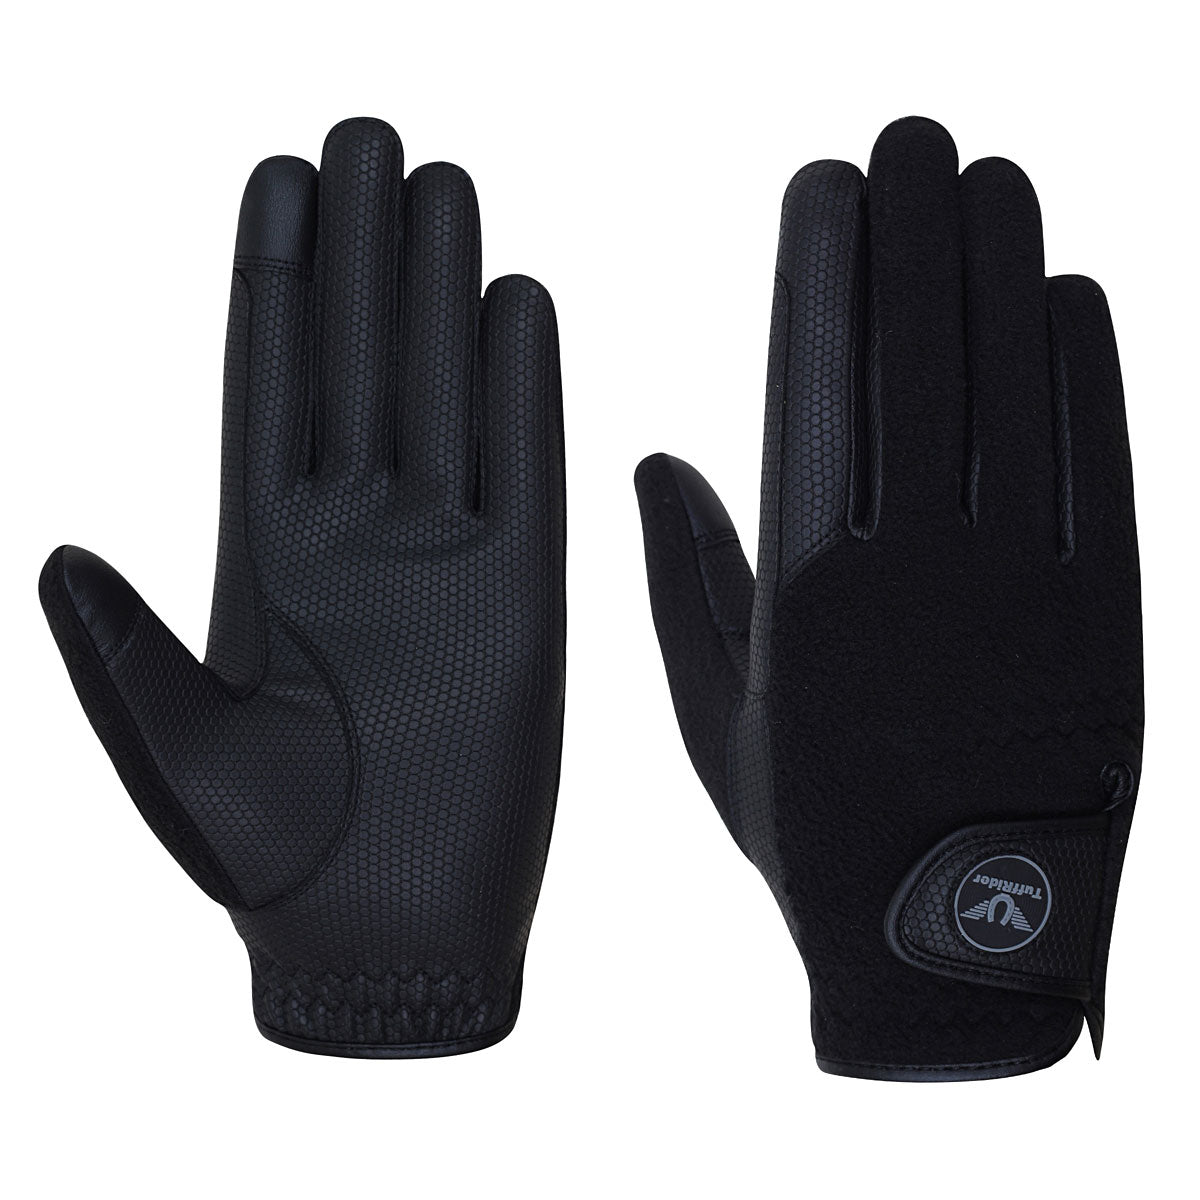 TuffRider Fleece Back Smart Riding Gloves - TuffRider - Breeches.com